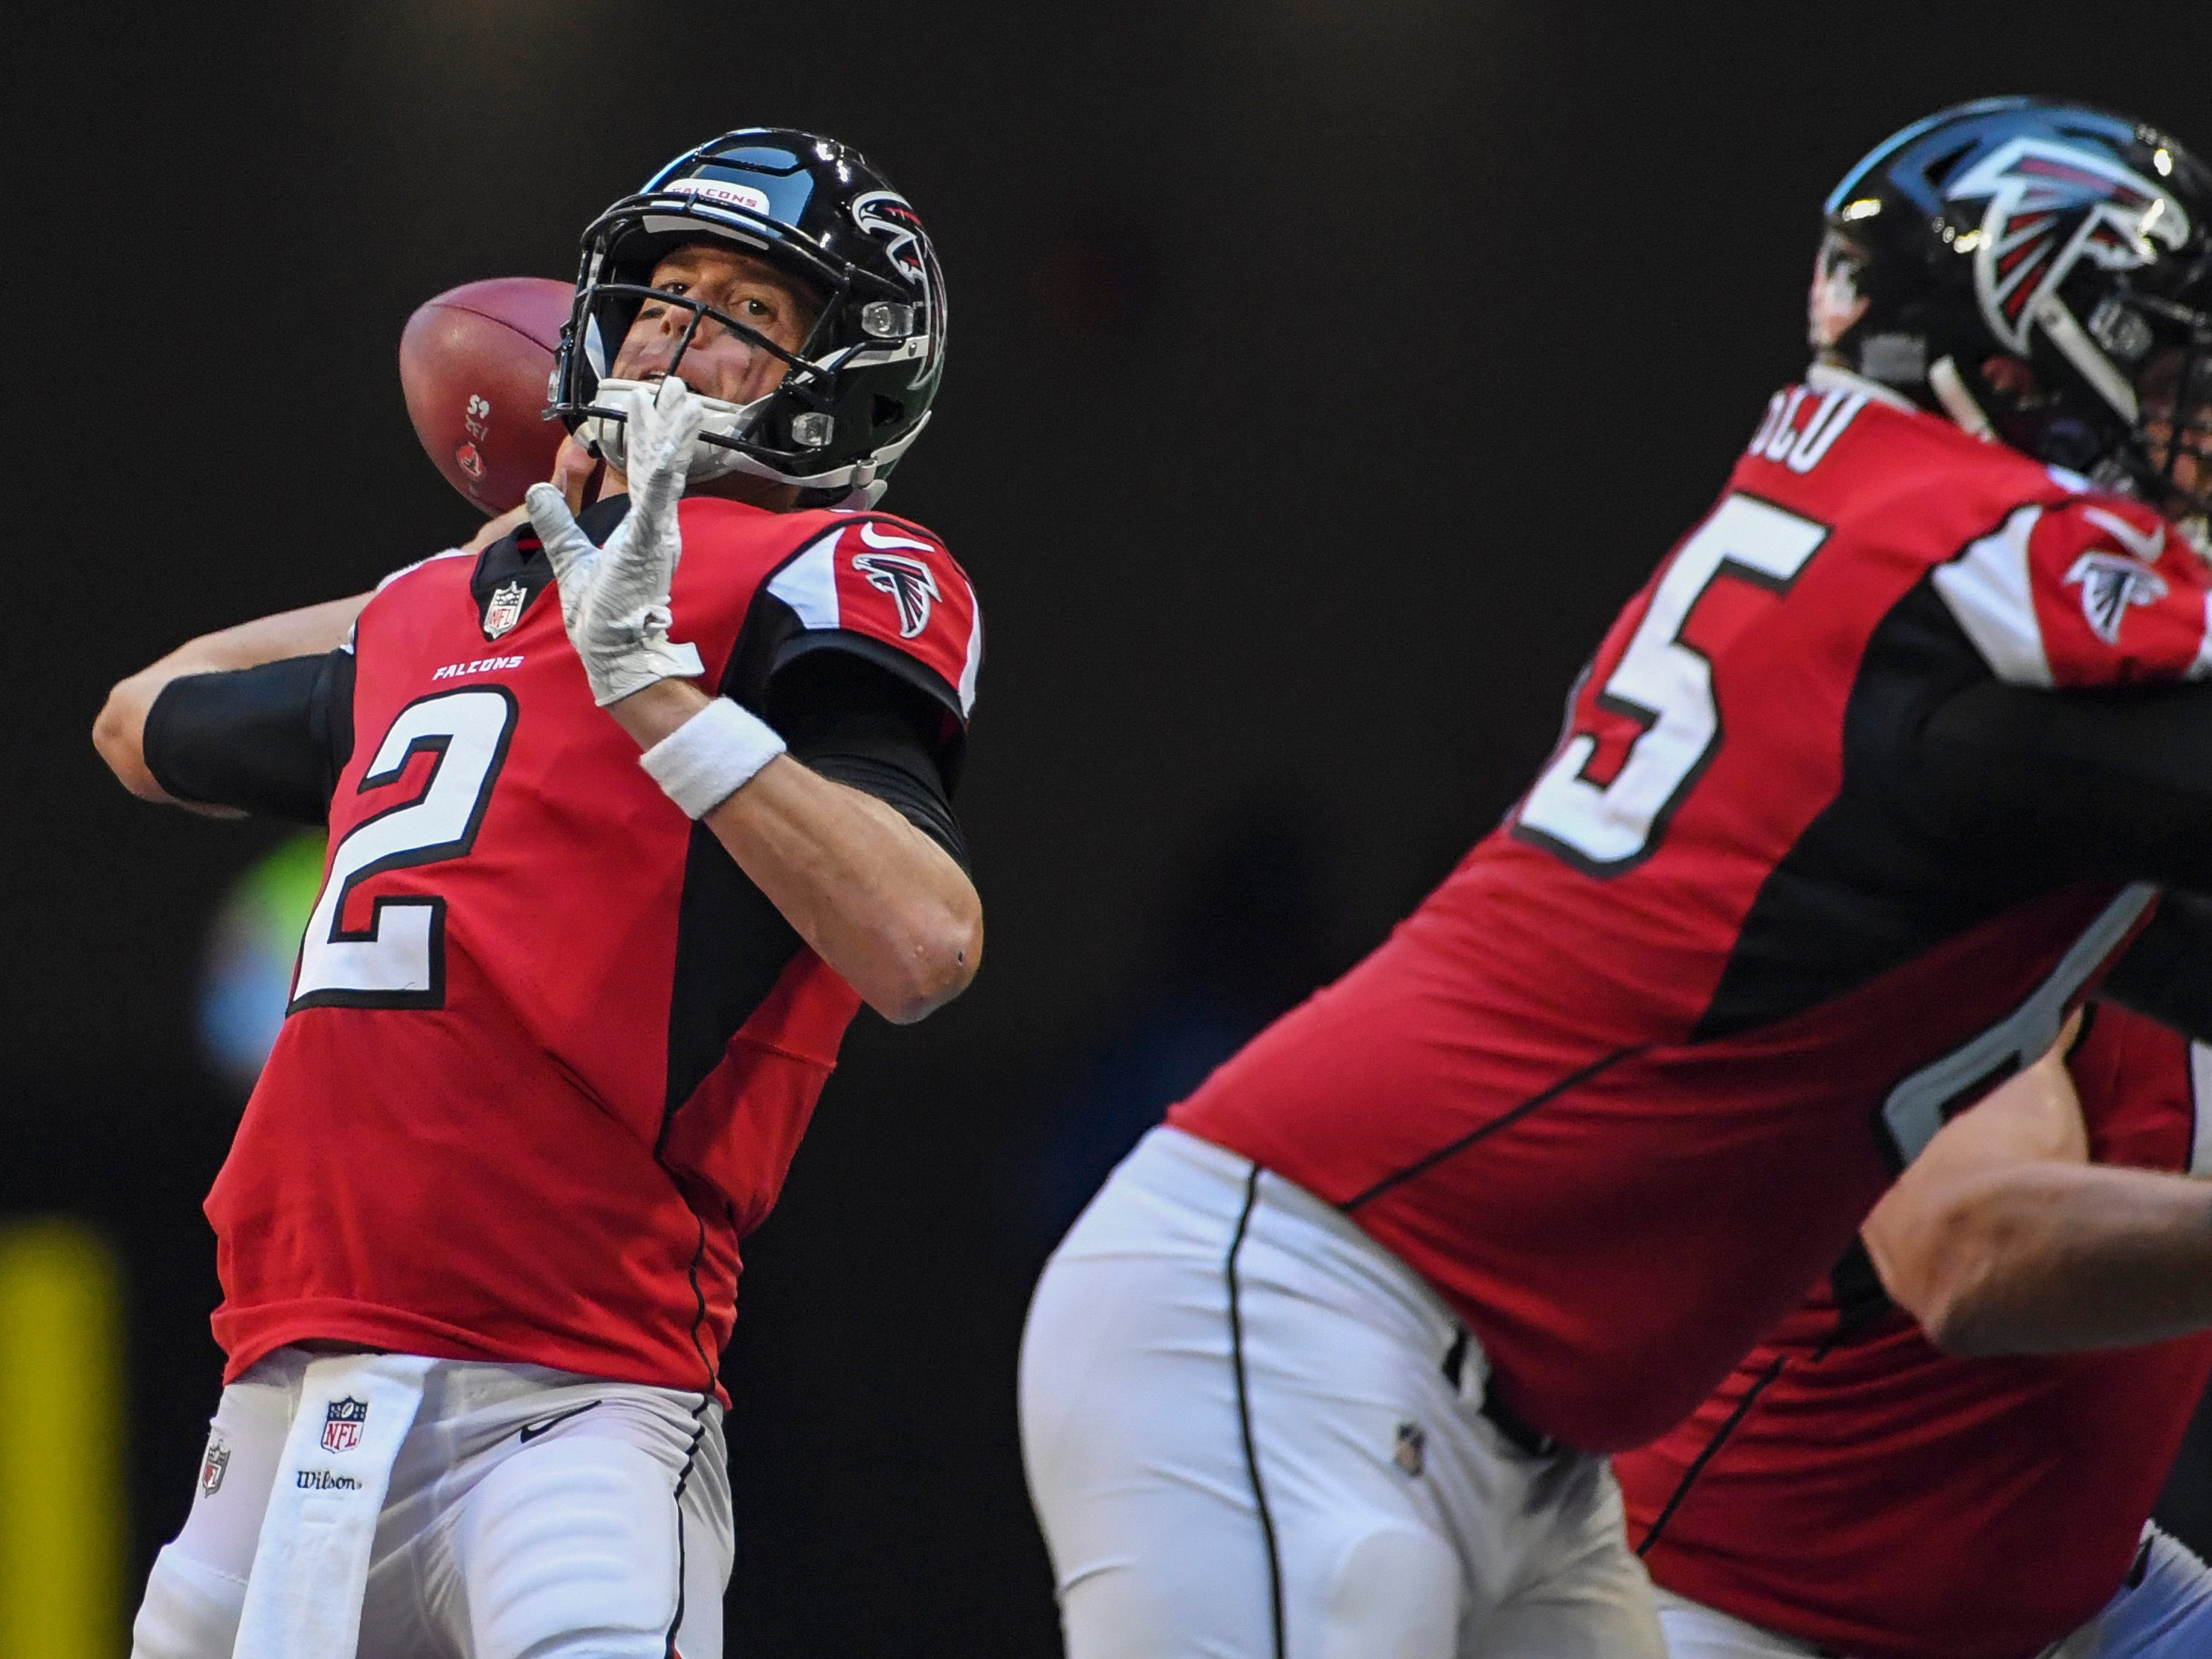 16. Falcons (21): Matt Ryan's 2016 season was starting to look like major statistical outlier, but this year's numbers approaching or exceeding MVP levels.